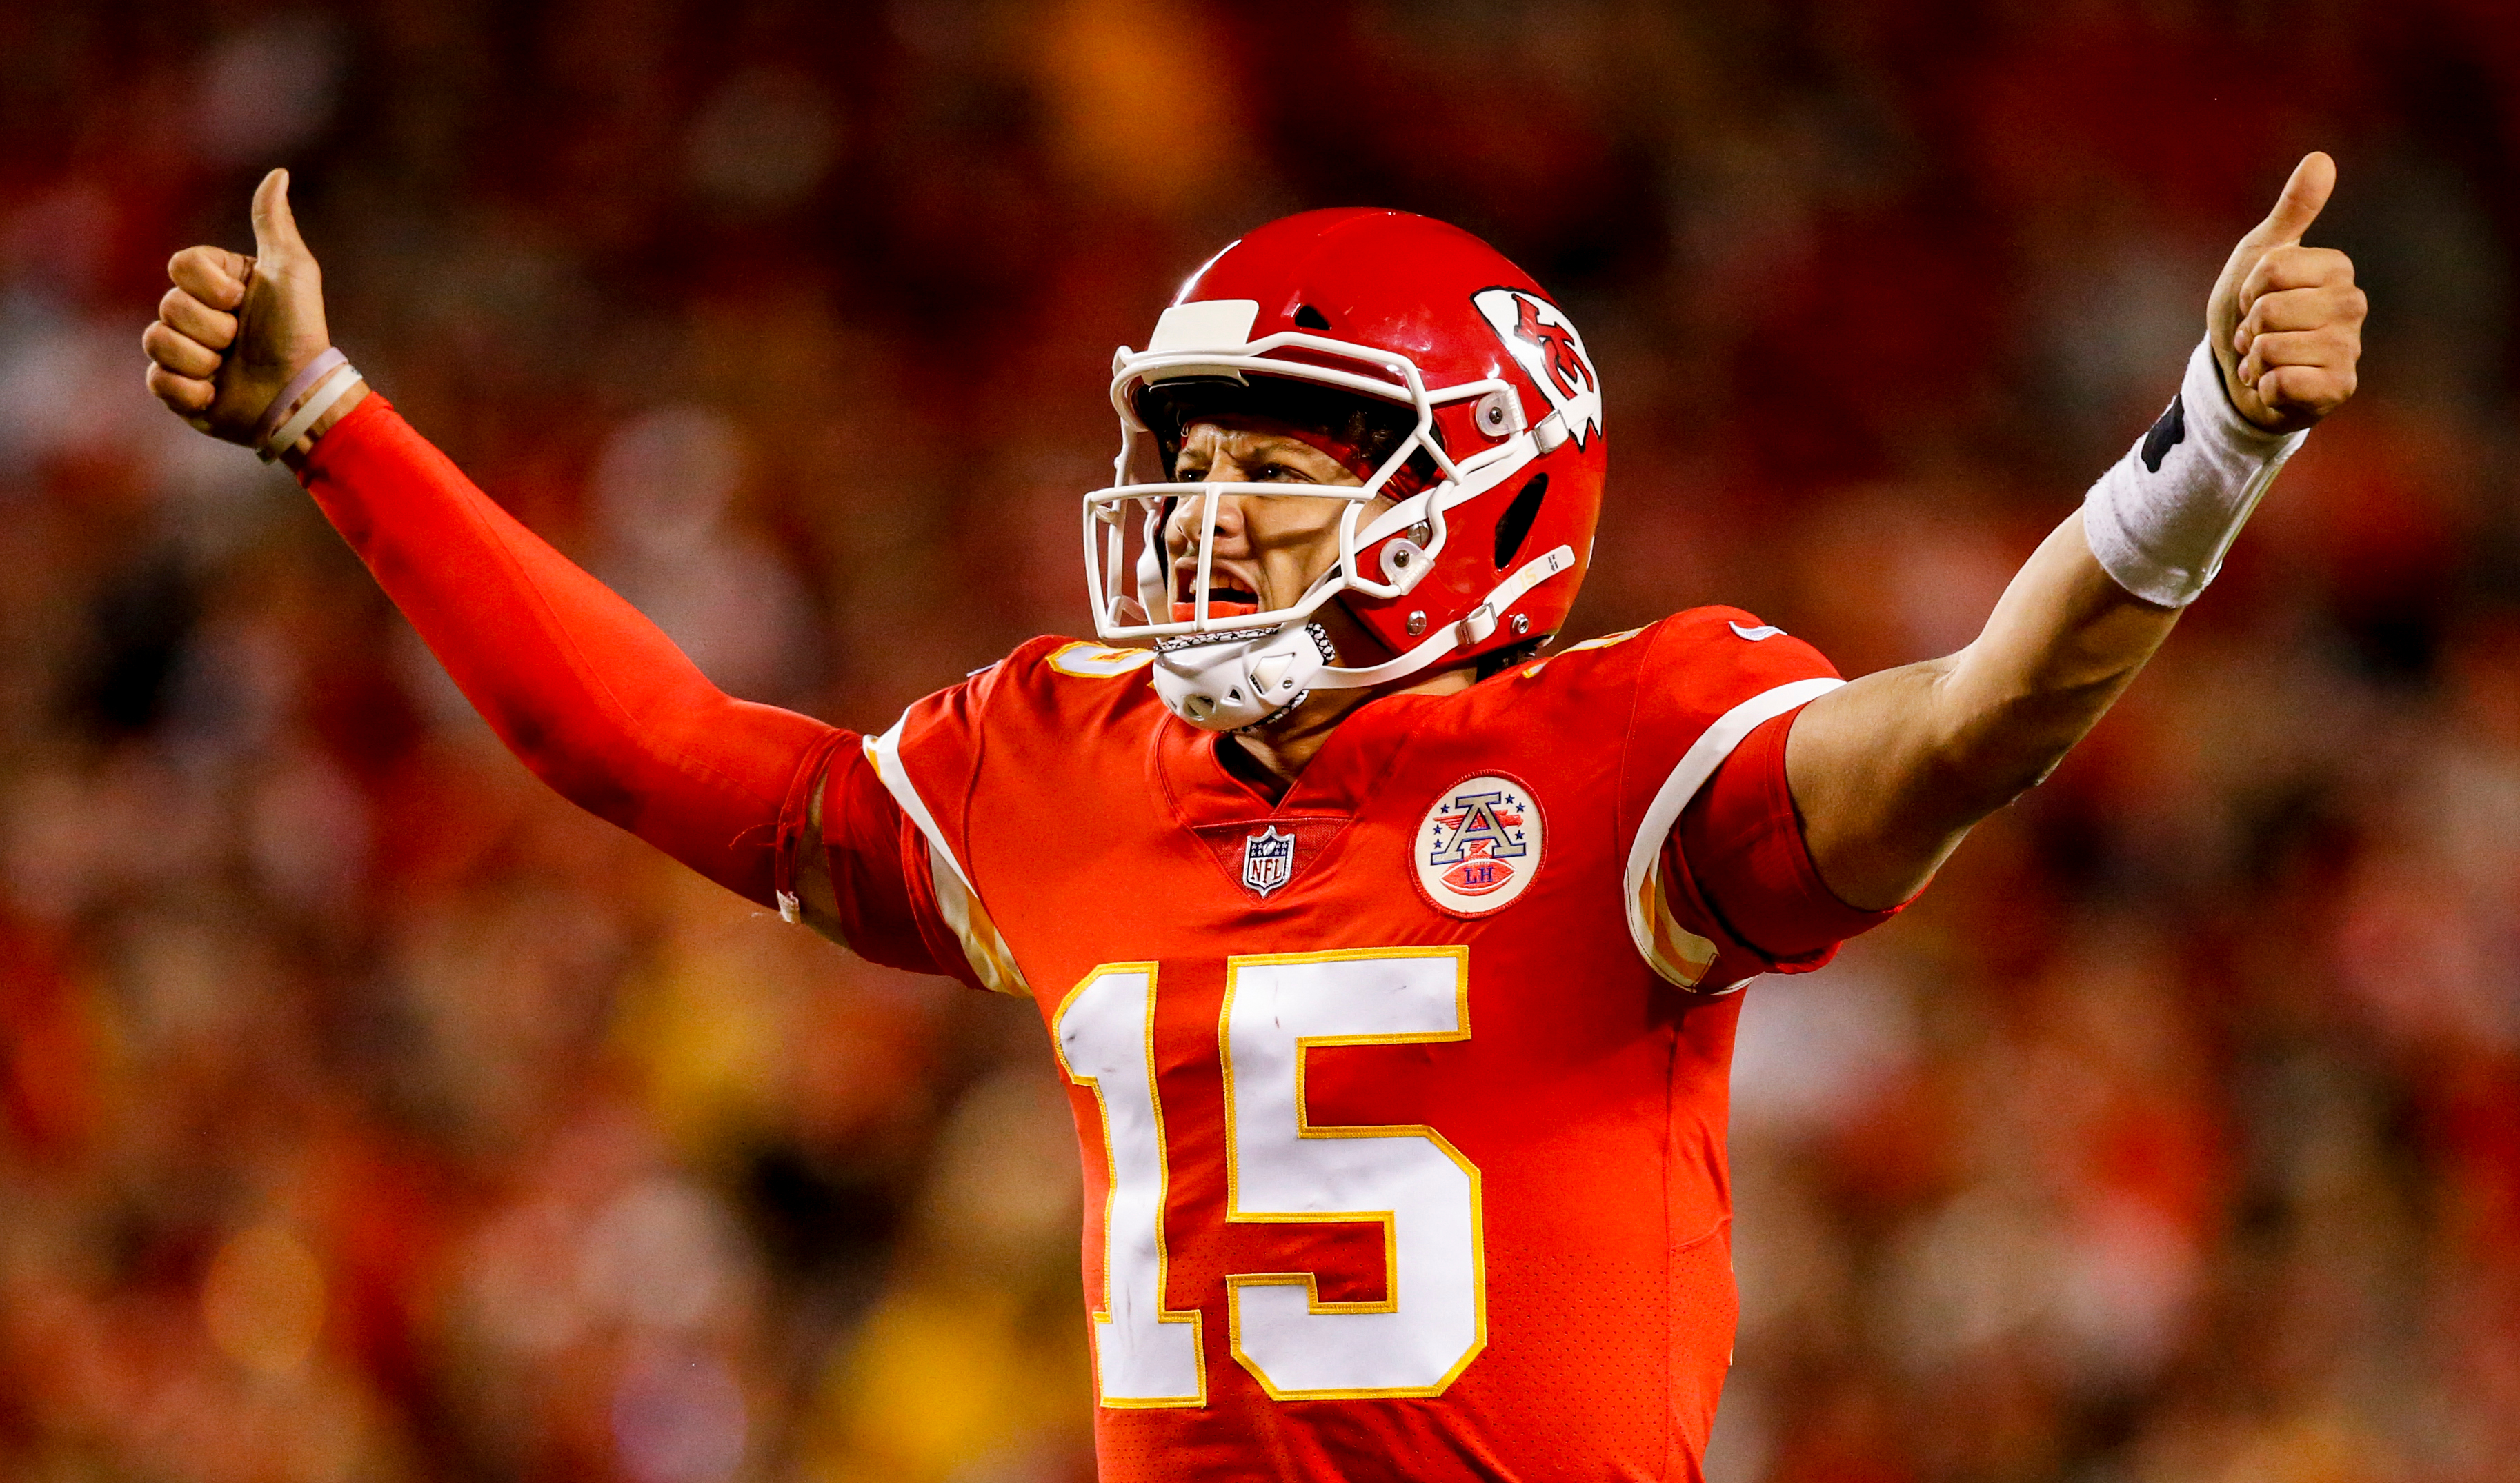 Highlights from the Chiefs dominating the Bengals on 'Sunday Night Football'